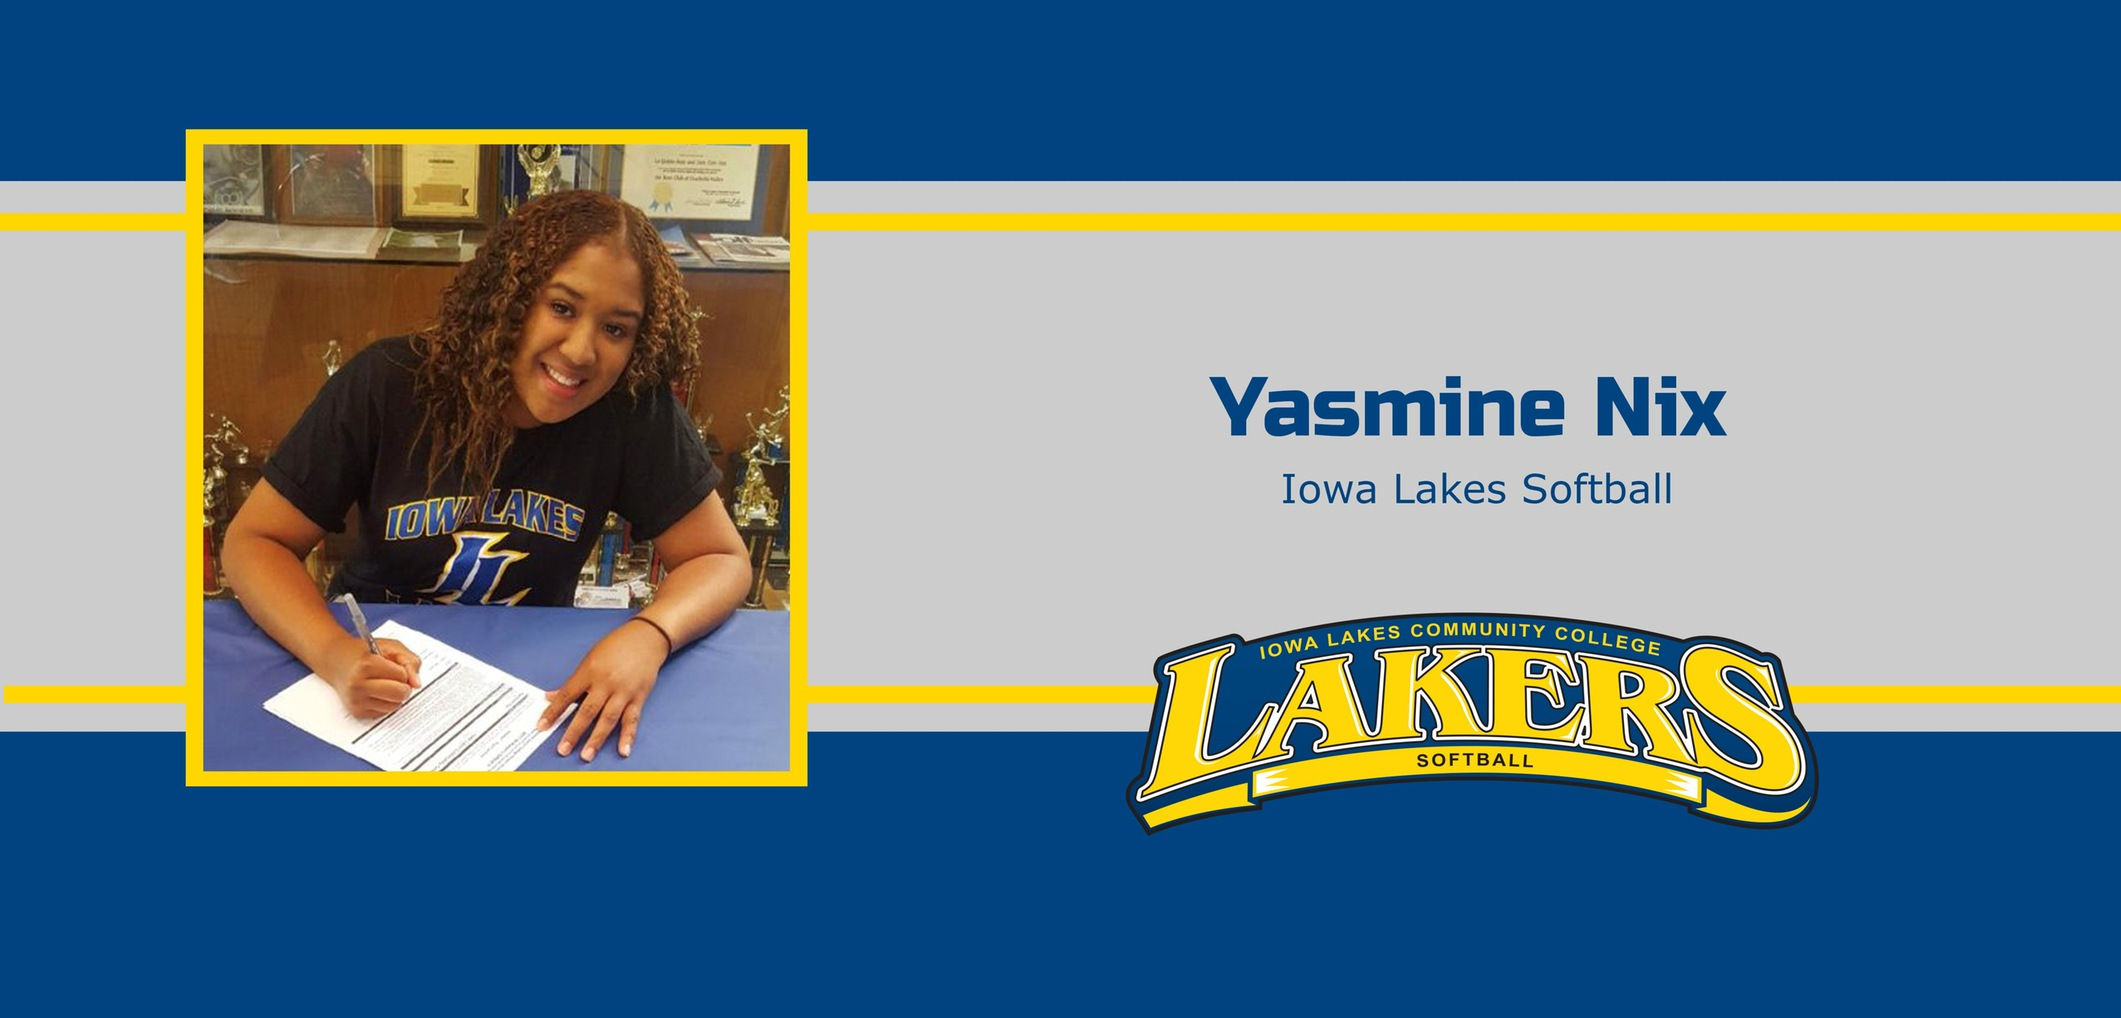 Iowa Lakes Softball Inks Yasmine Nix